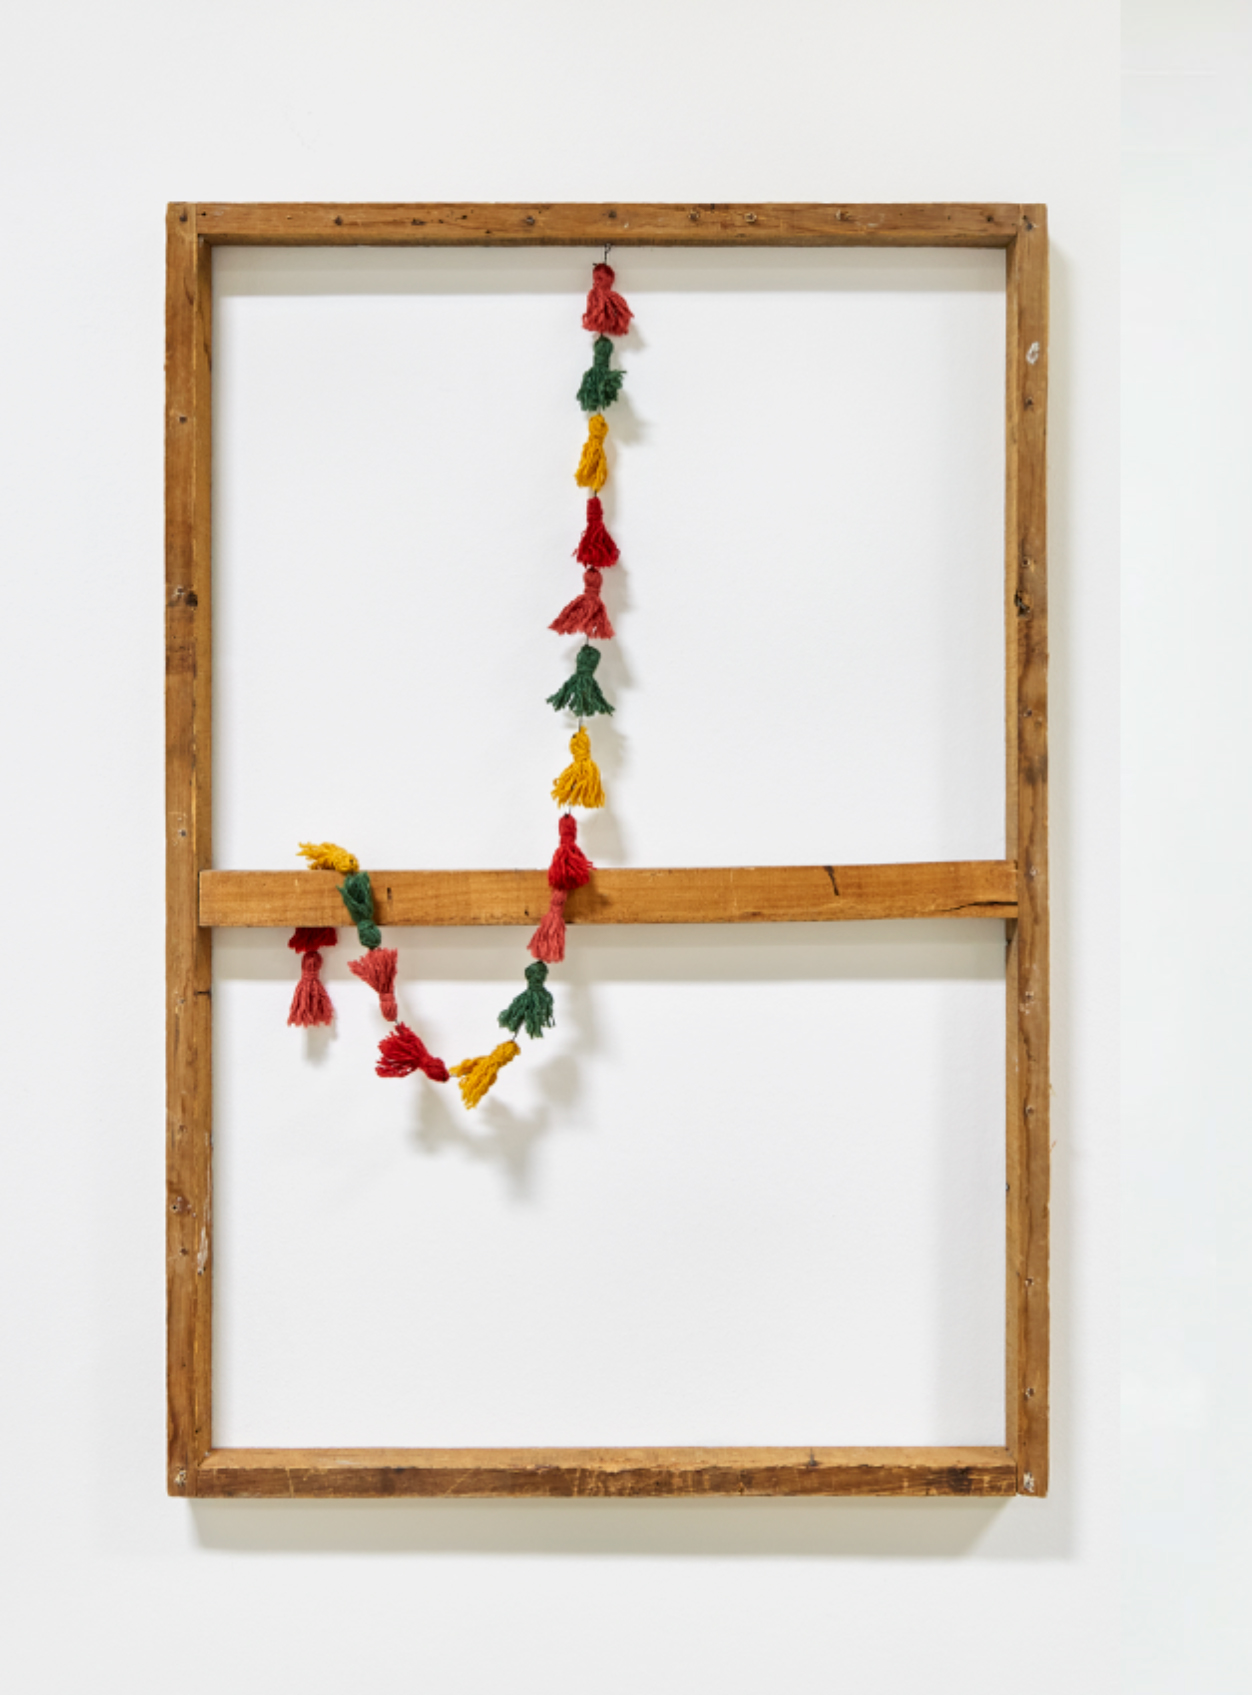 Identity Pick n' Mix I, 2021, Cotton dyed-tassels on wooden frame, 60 x 90 cm